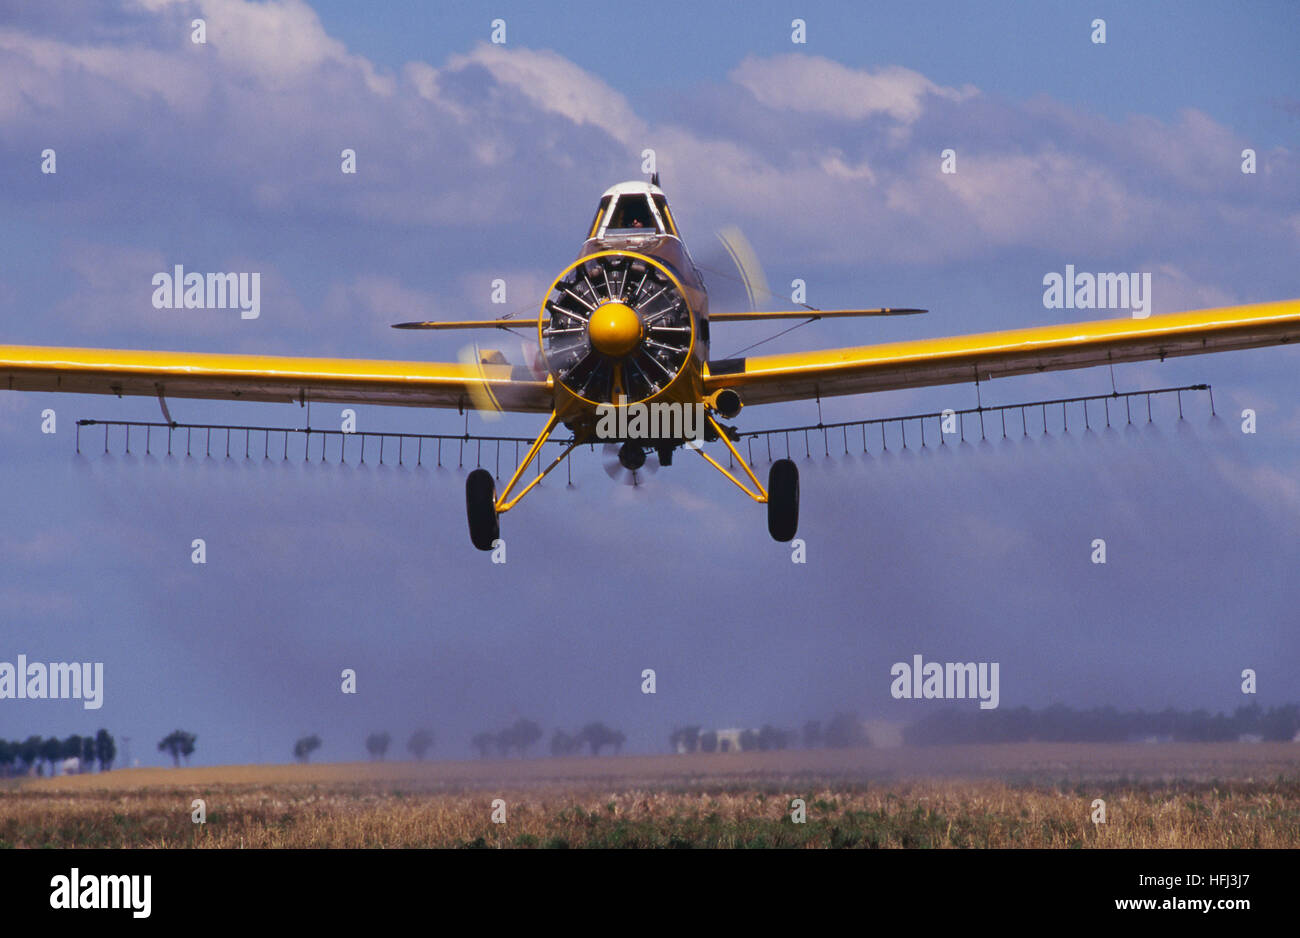 A yellow agricultural crop dusting aircraft sprays a farm field with pesticide. Aerial application, or what was - Stock Image